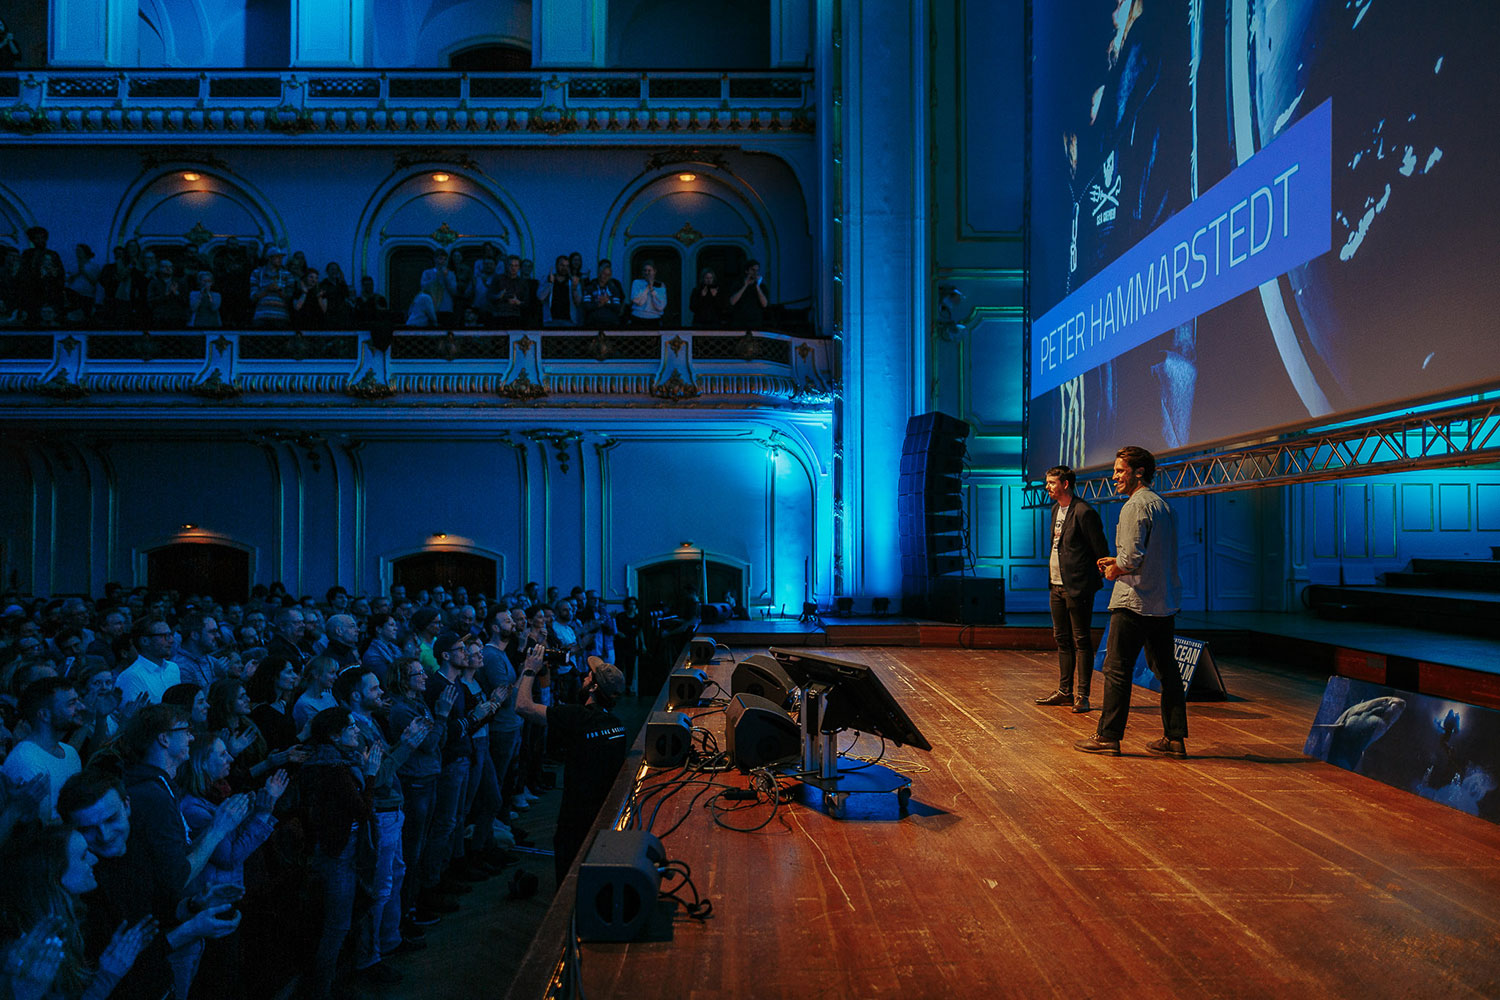 Standing Ovations for Peter Hammarstedt at the premiere in Hamburg